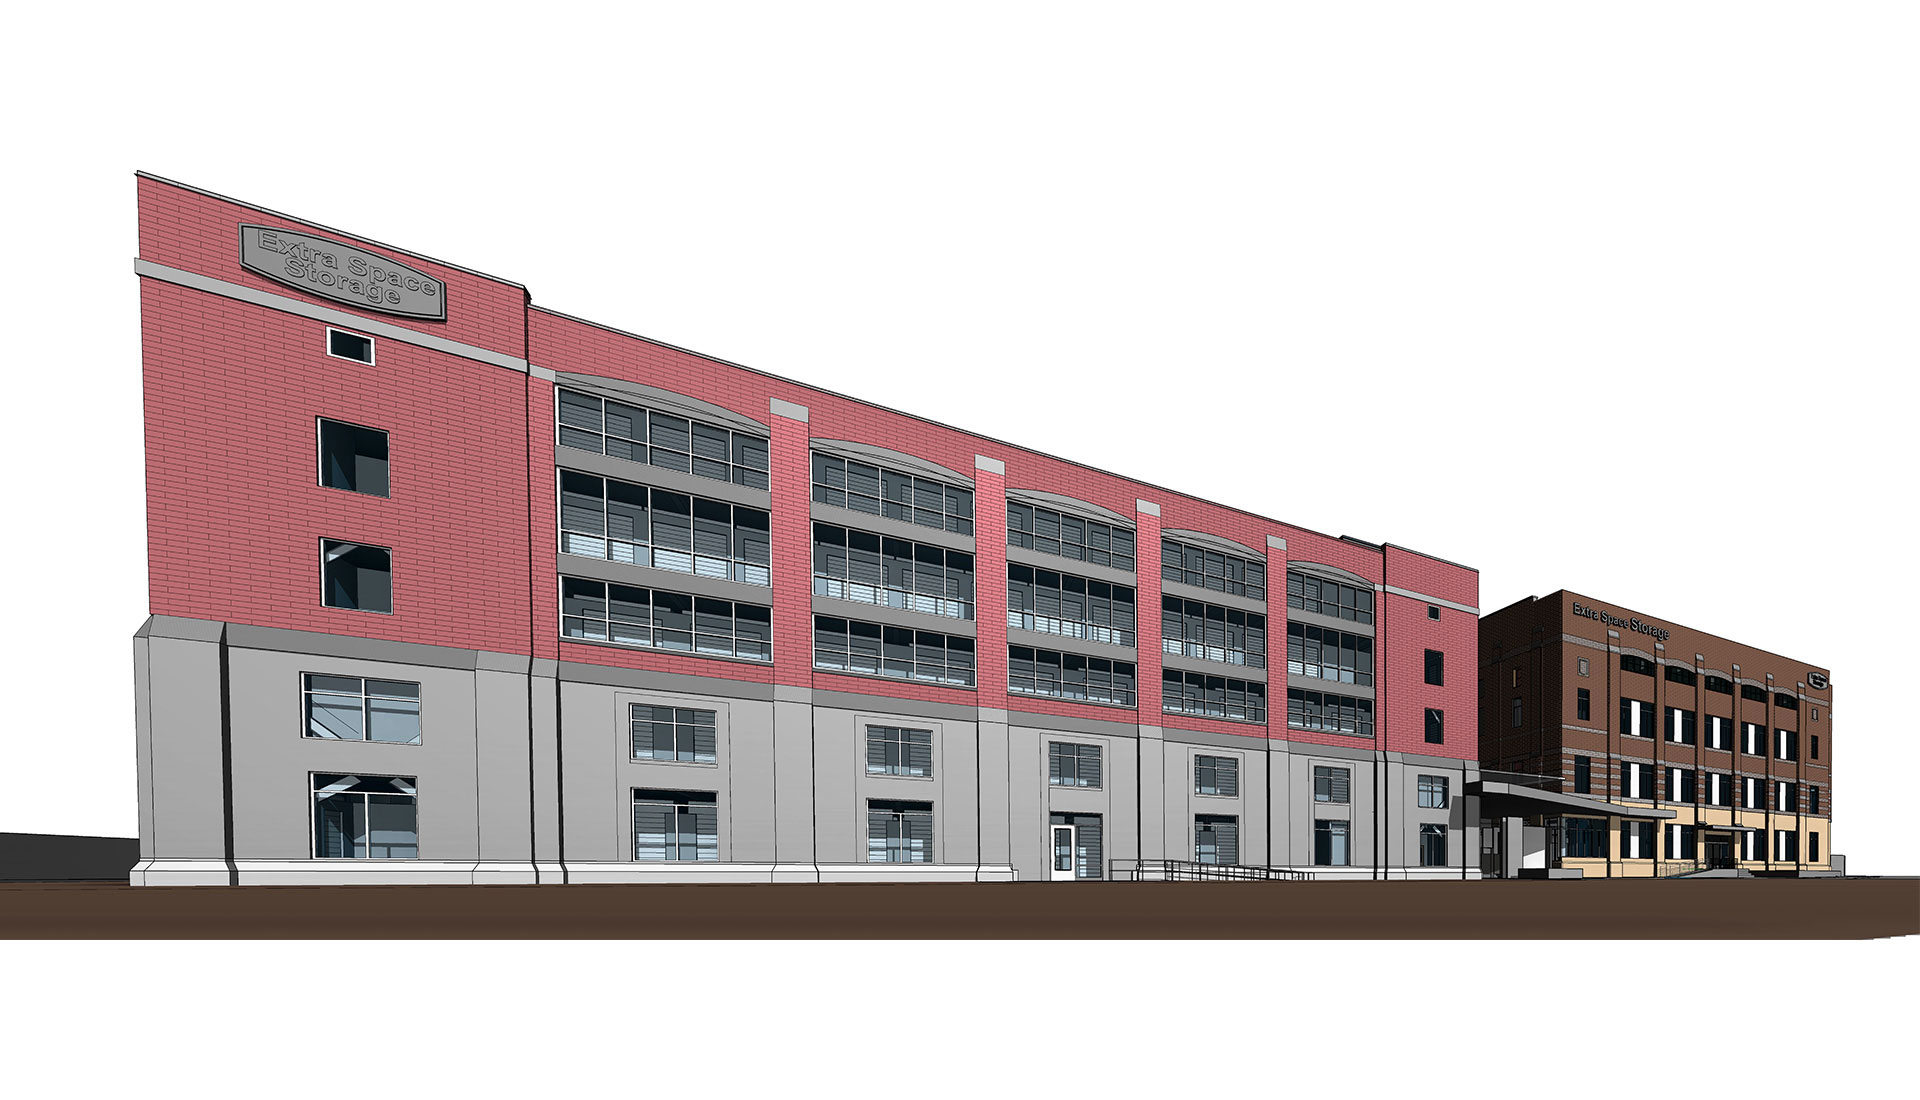 Extra-Space-Storage-Facility-BIM-Modeling-Project-in-Commercial-Sector